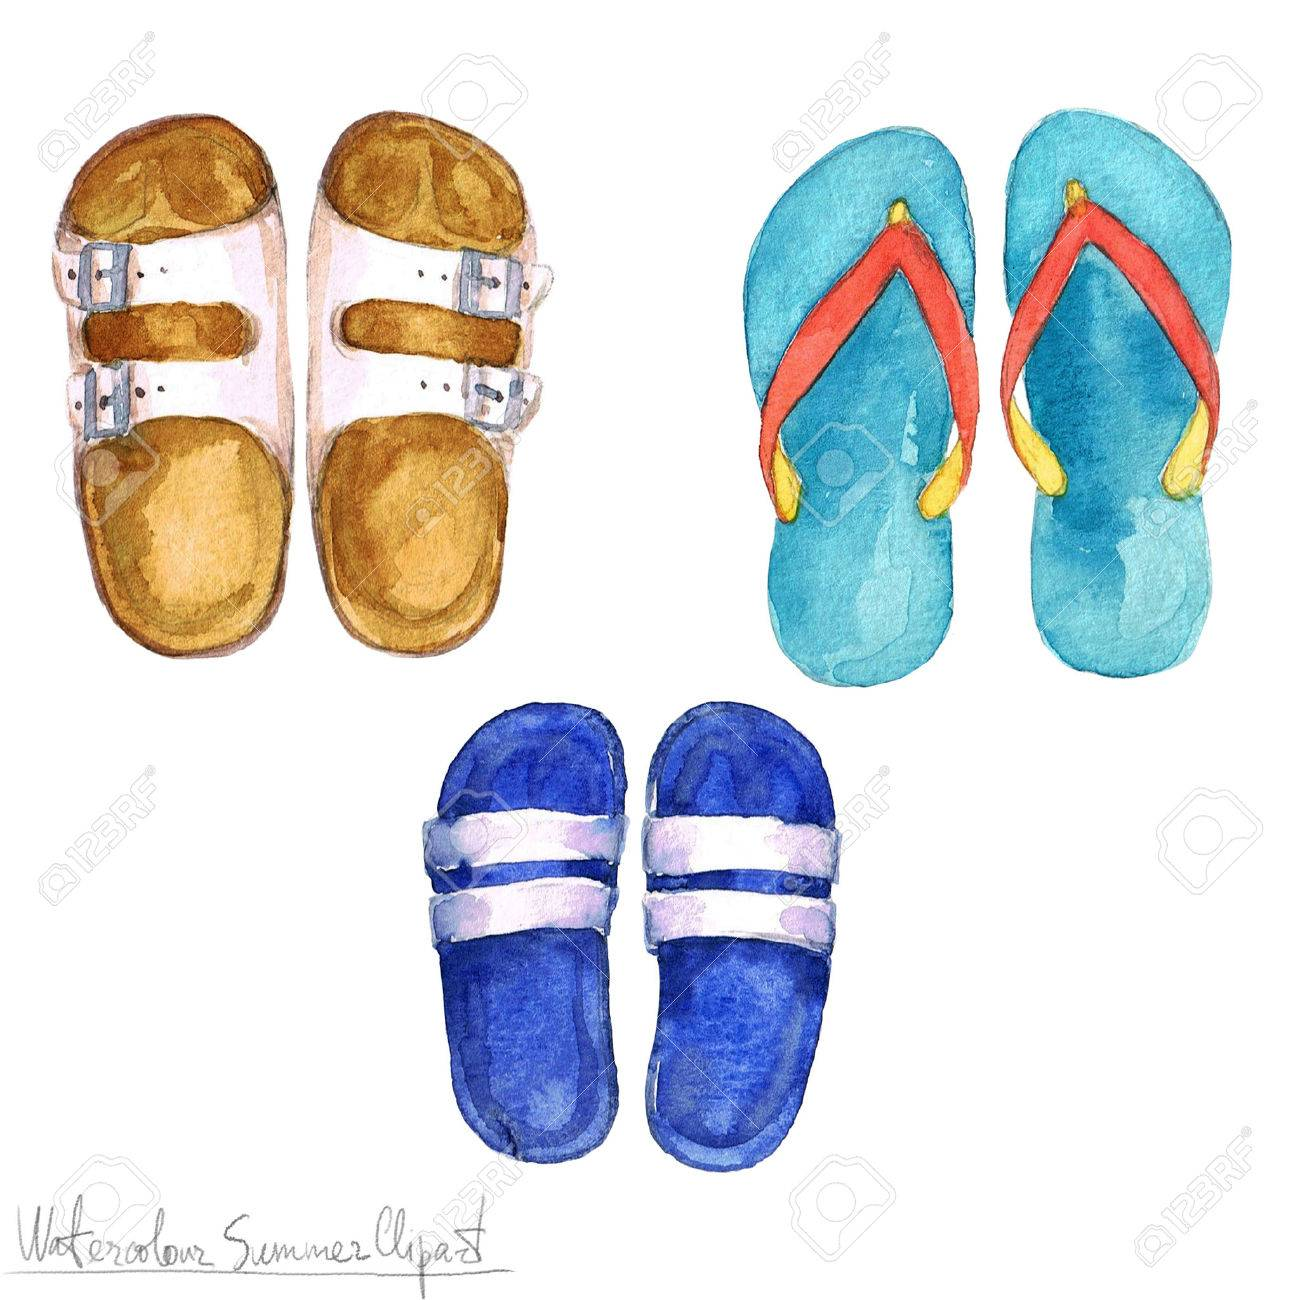 5bdd9479e3a121 Watercolor Summer Clipart - Flipflops Stock Photo - 56638803